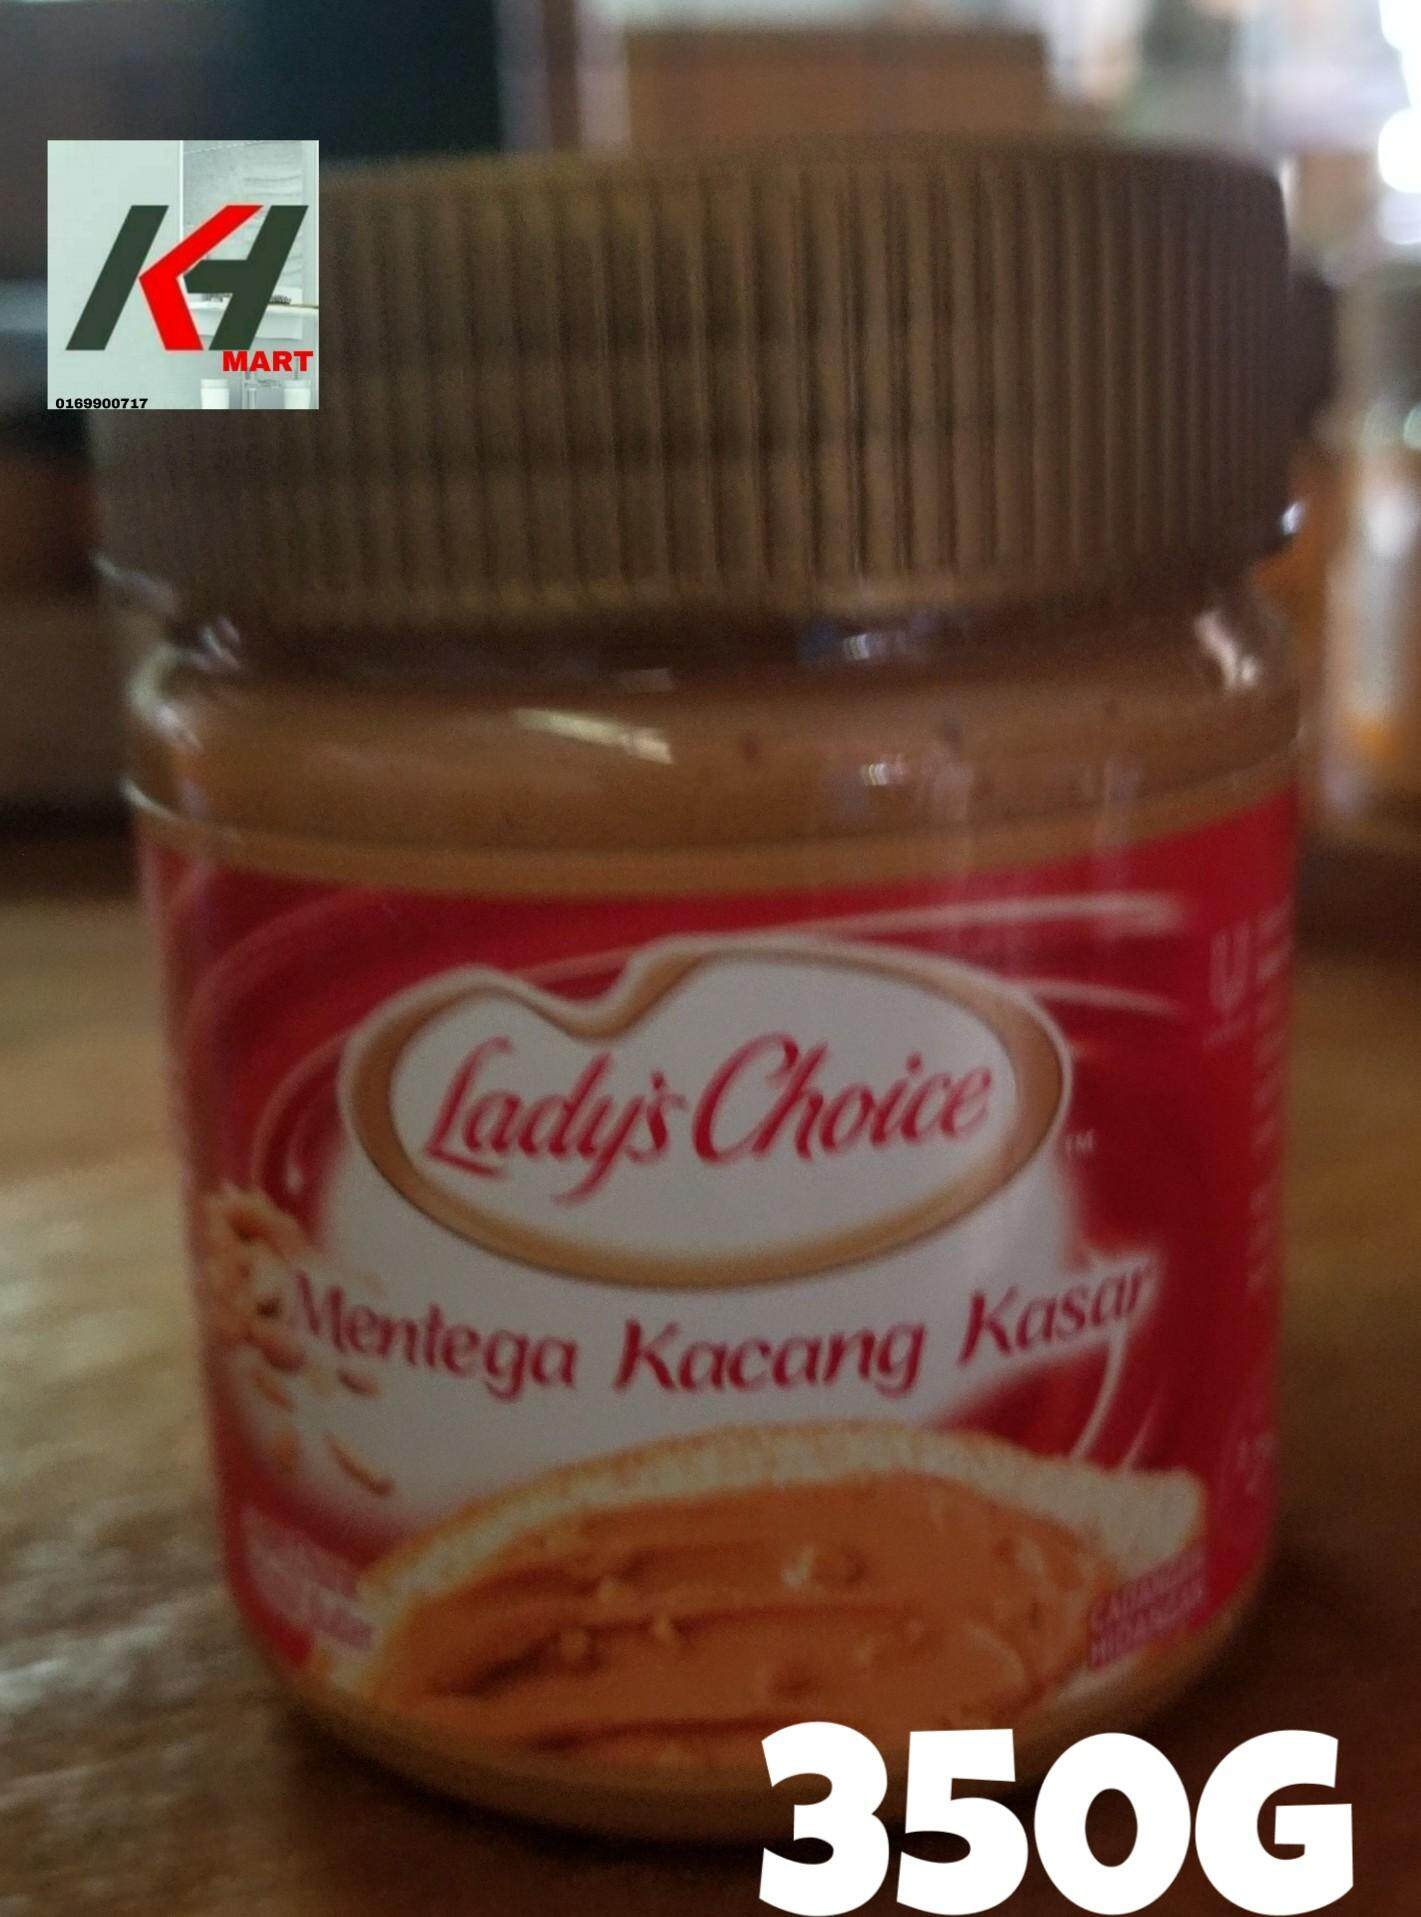 LADY'S CHOICE PEANUT BUTTER (KACANG KASAR) - 340G READY STOCK